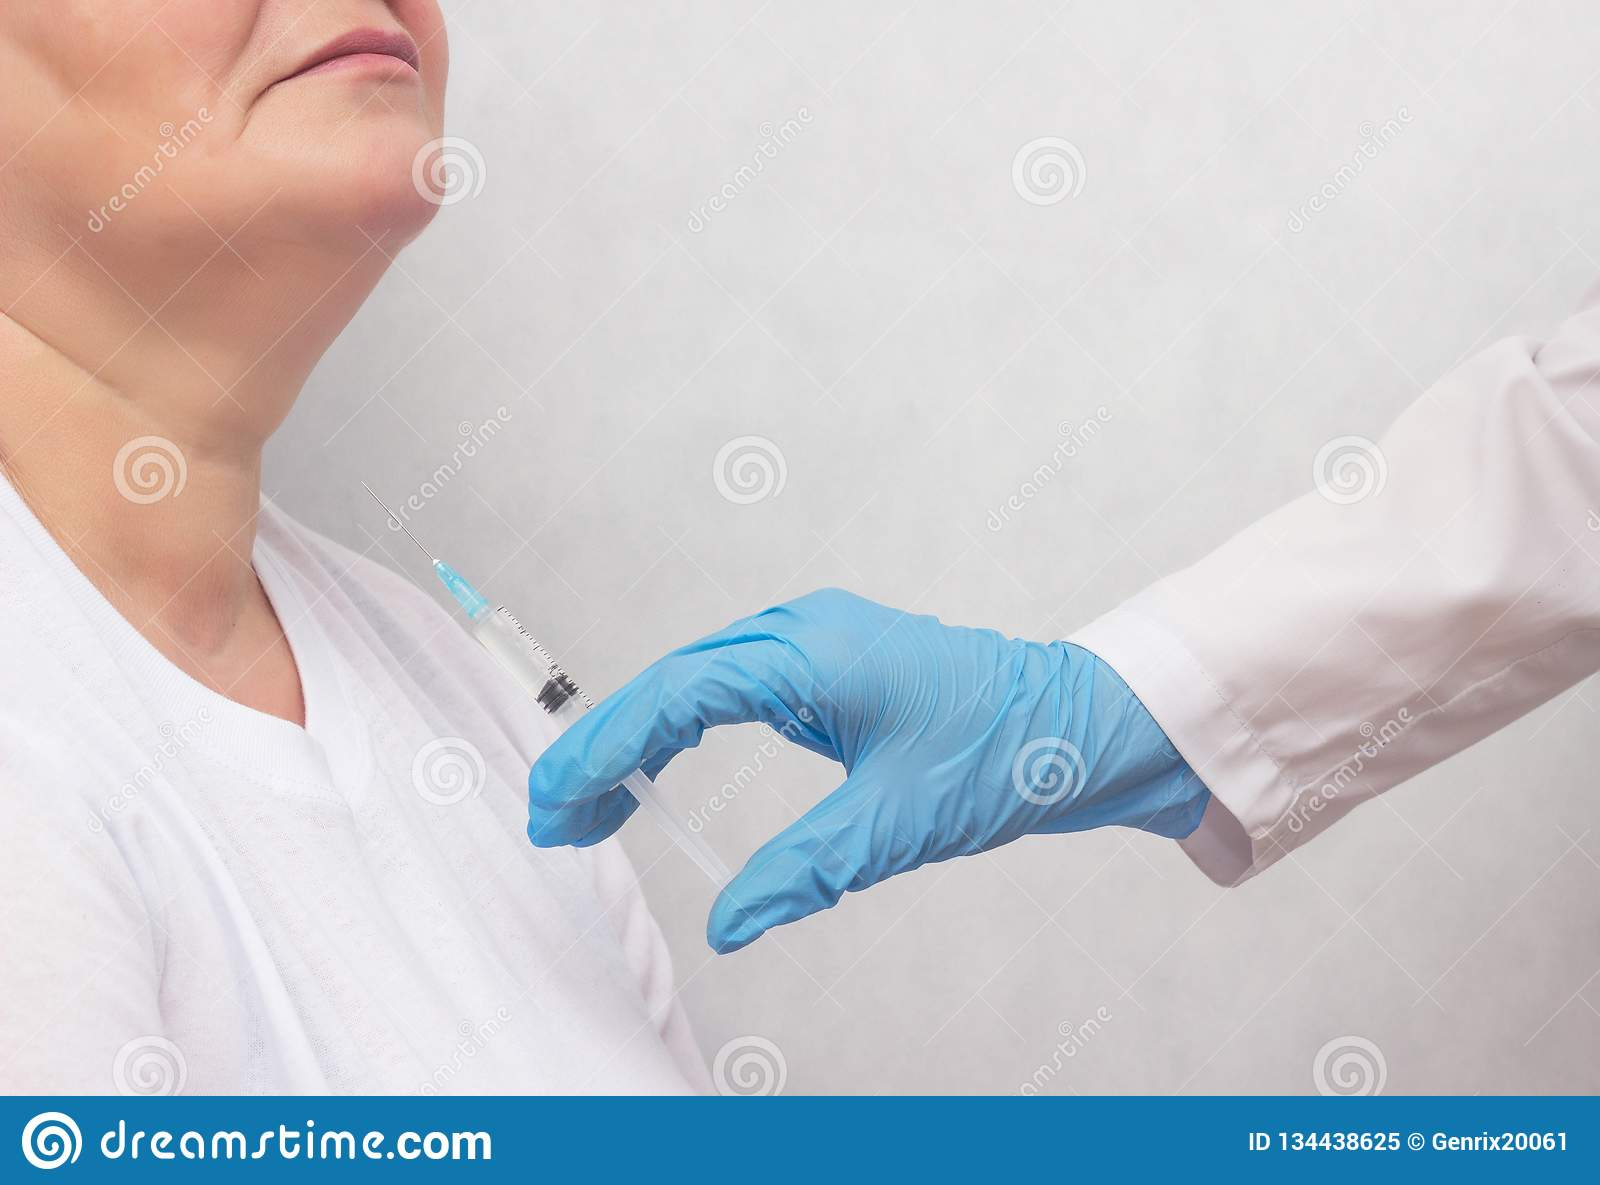 The doctor makes the woman puncture the thyroid gland to clarify the diagnosis, cancer, copy space